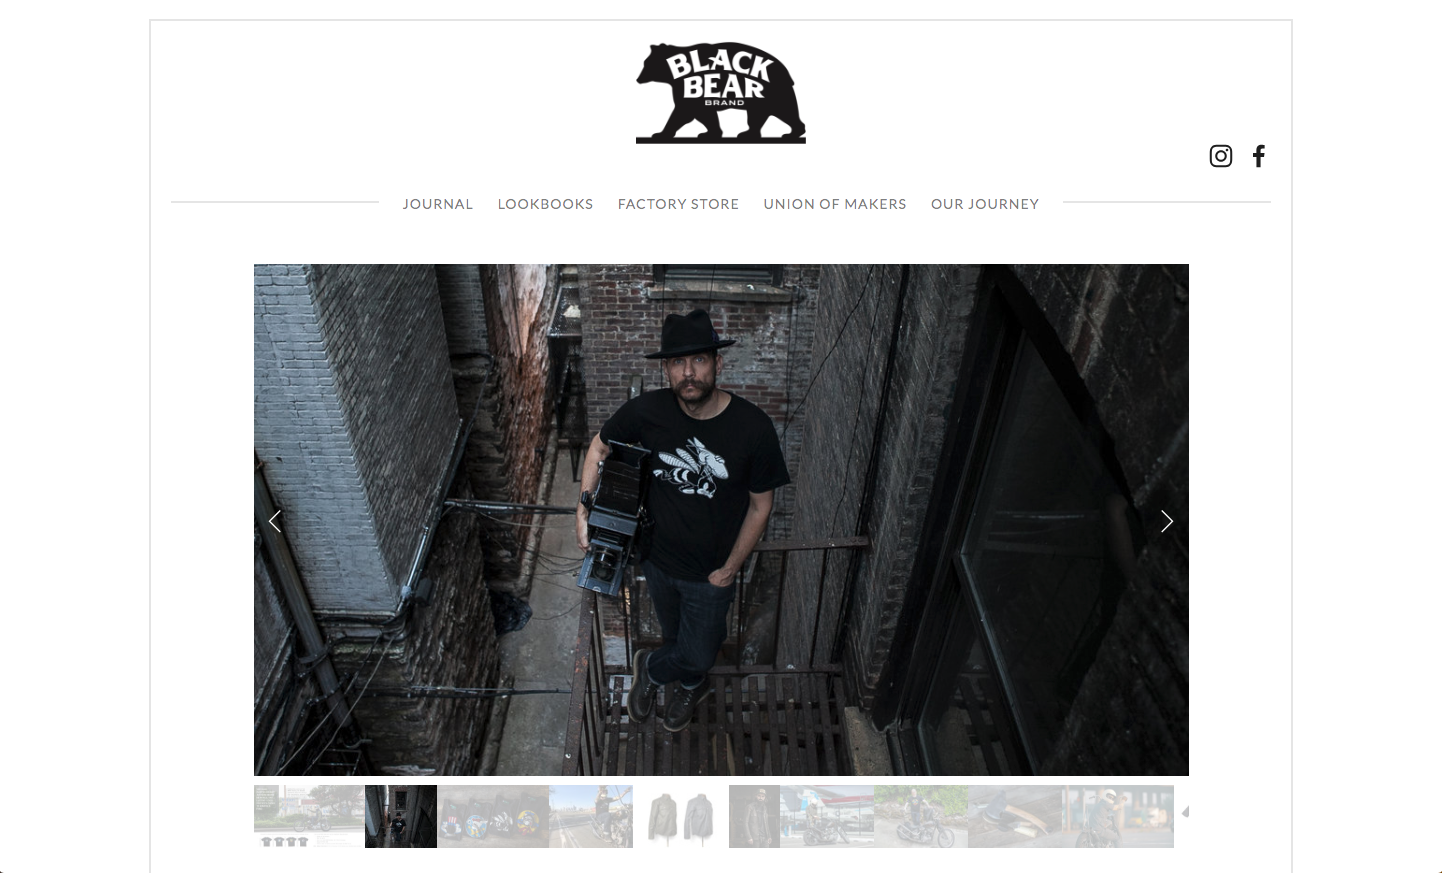 black bear brand website homepage